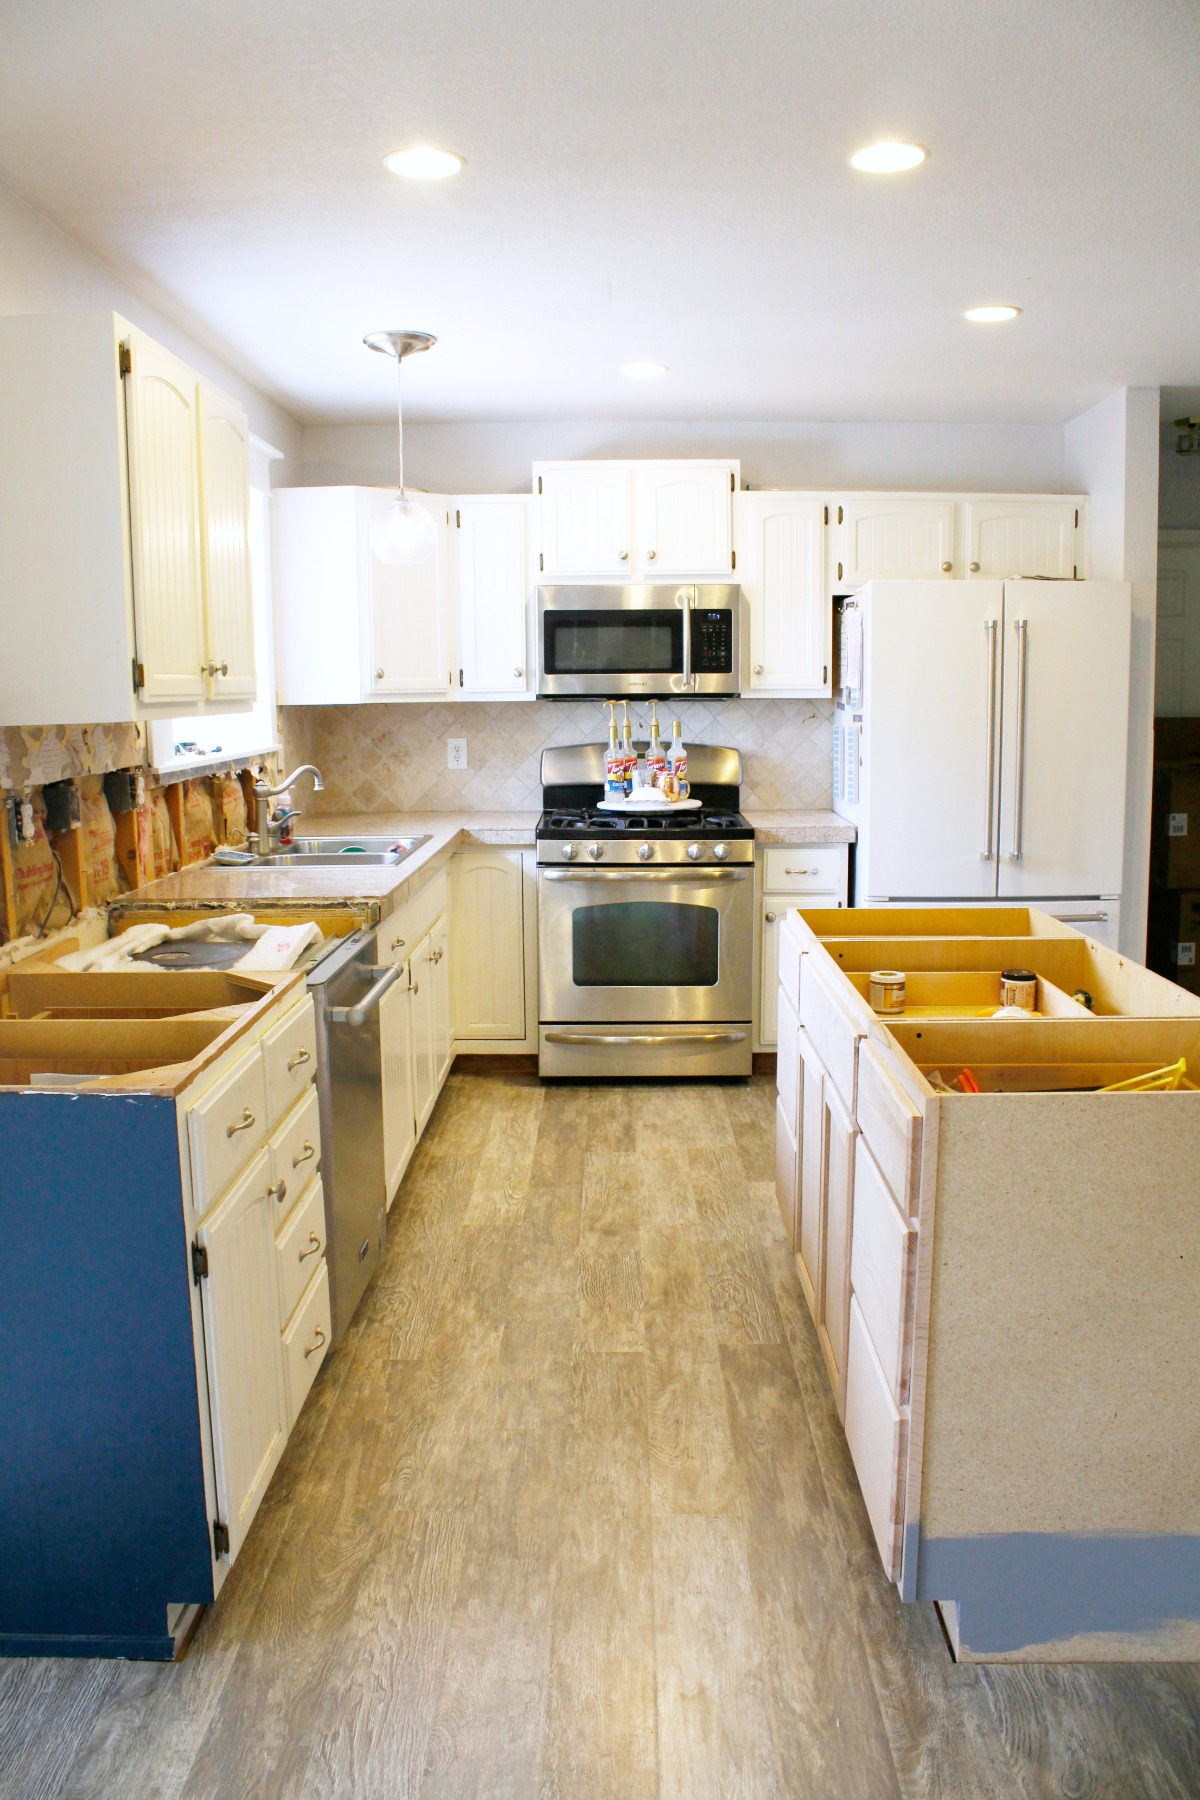 Home Depot Kitchen Lighting at Home and Interior Design Ideas